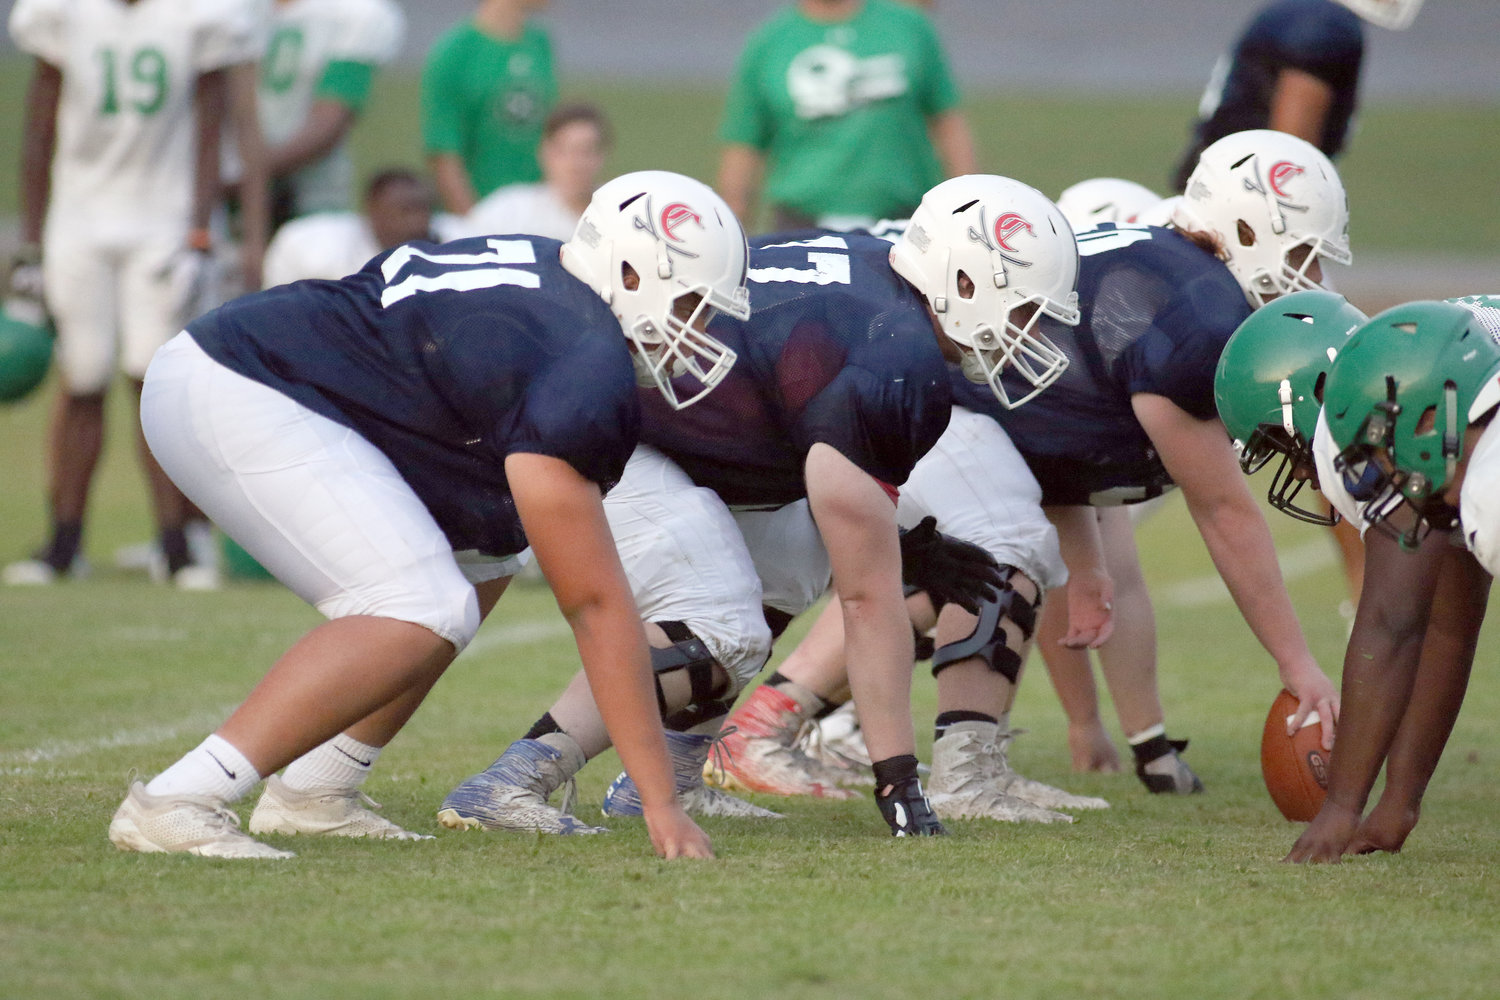 High school football teams hold first scrimmages | Herald Citizen